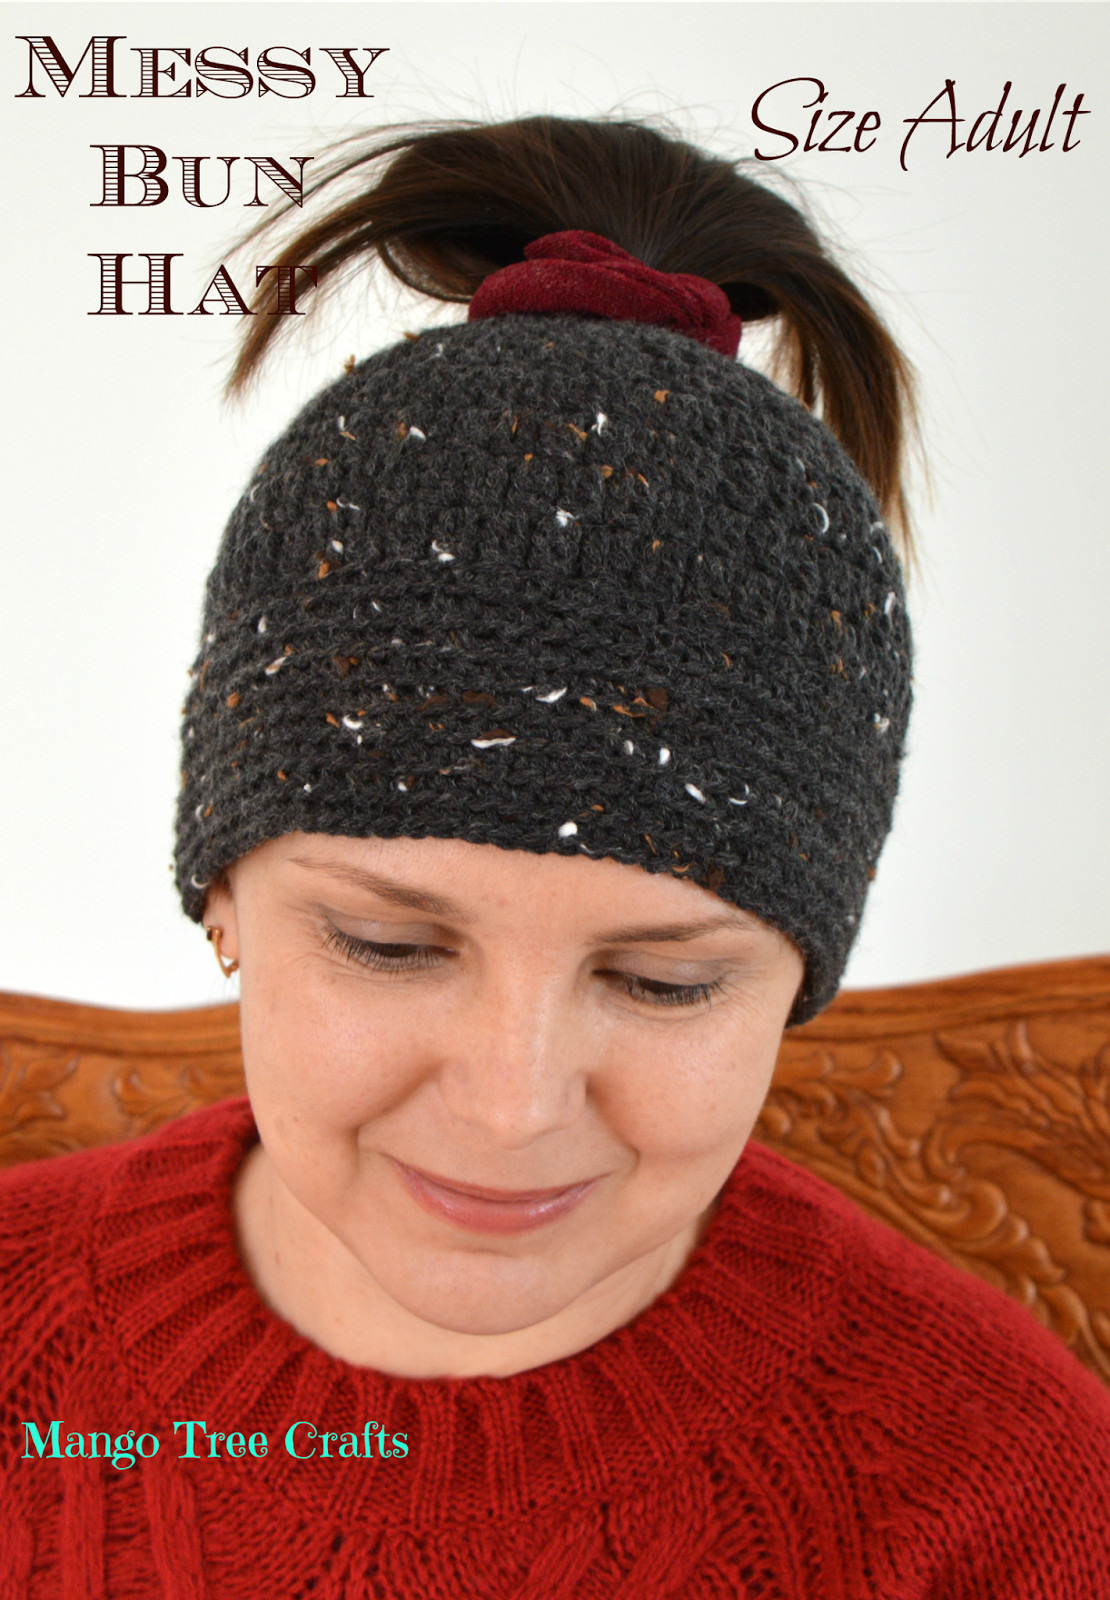 Hats for Buns Luxury Messy Bun Hat Free Crochet Pattern Size Adult Of Wonderful 40 Photos Hats for Buns